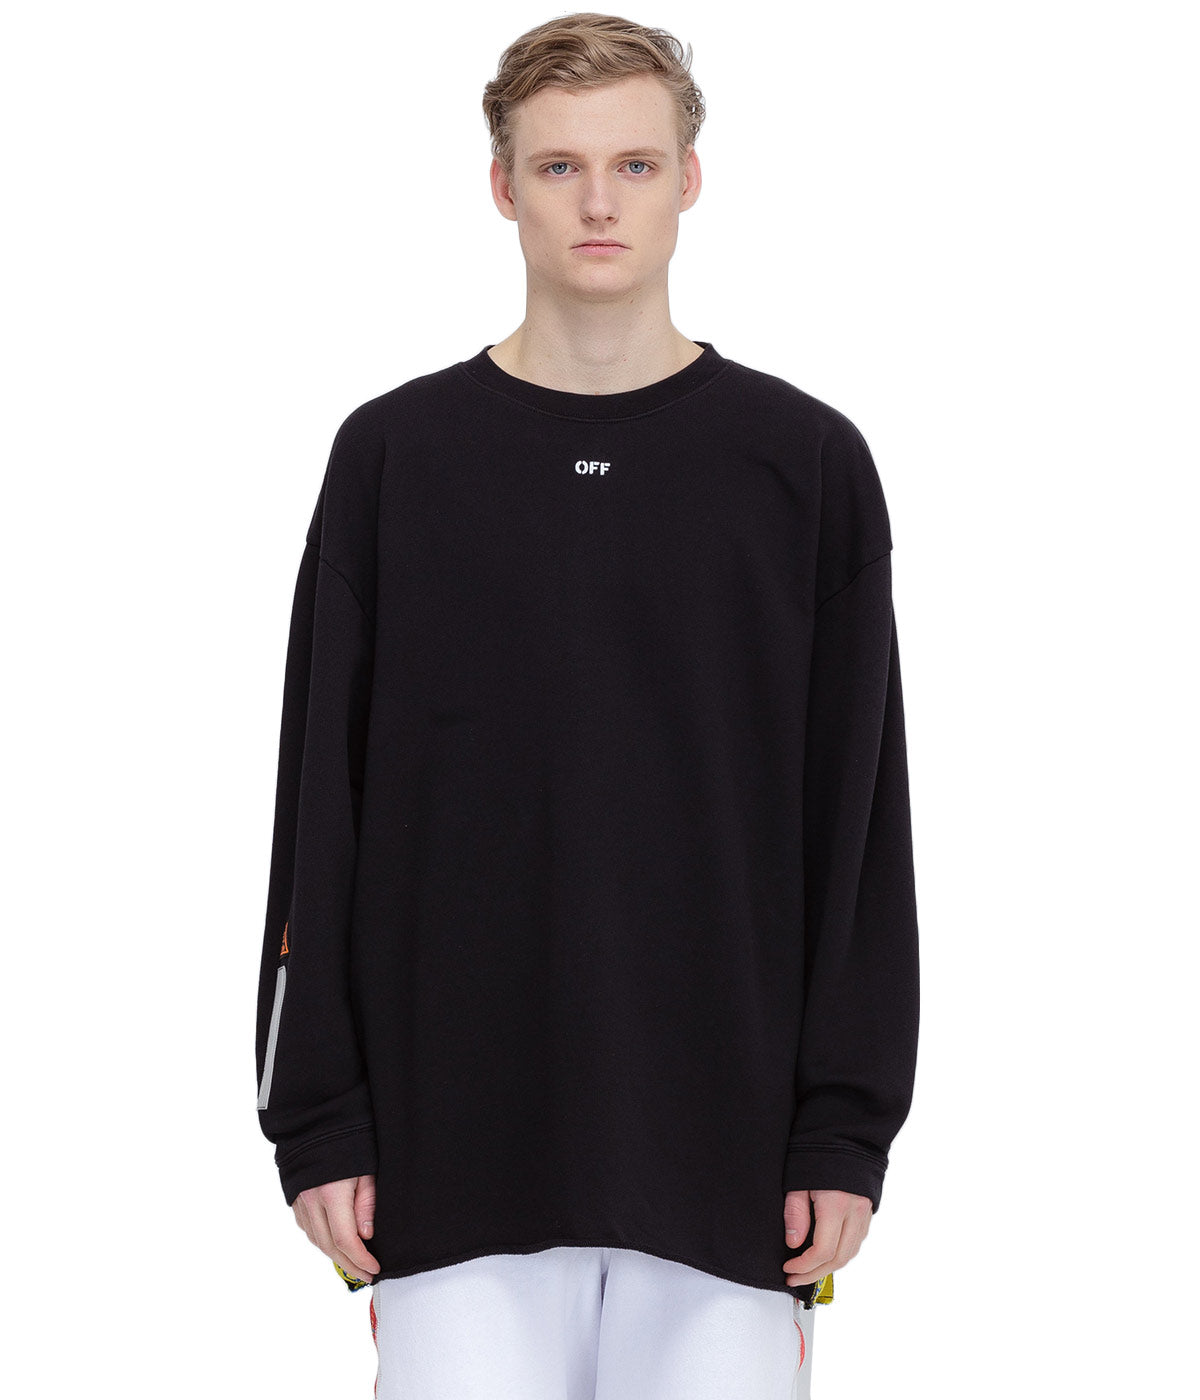 Black Tape Over Sweatshirt